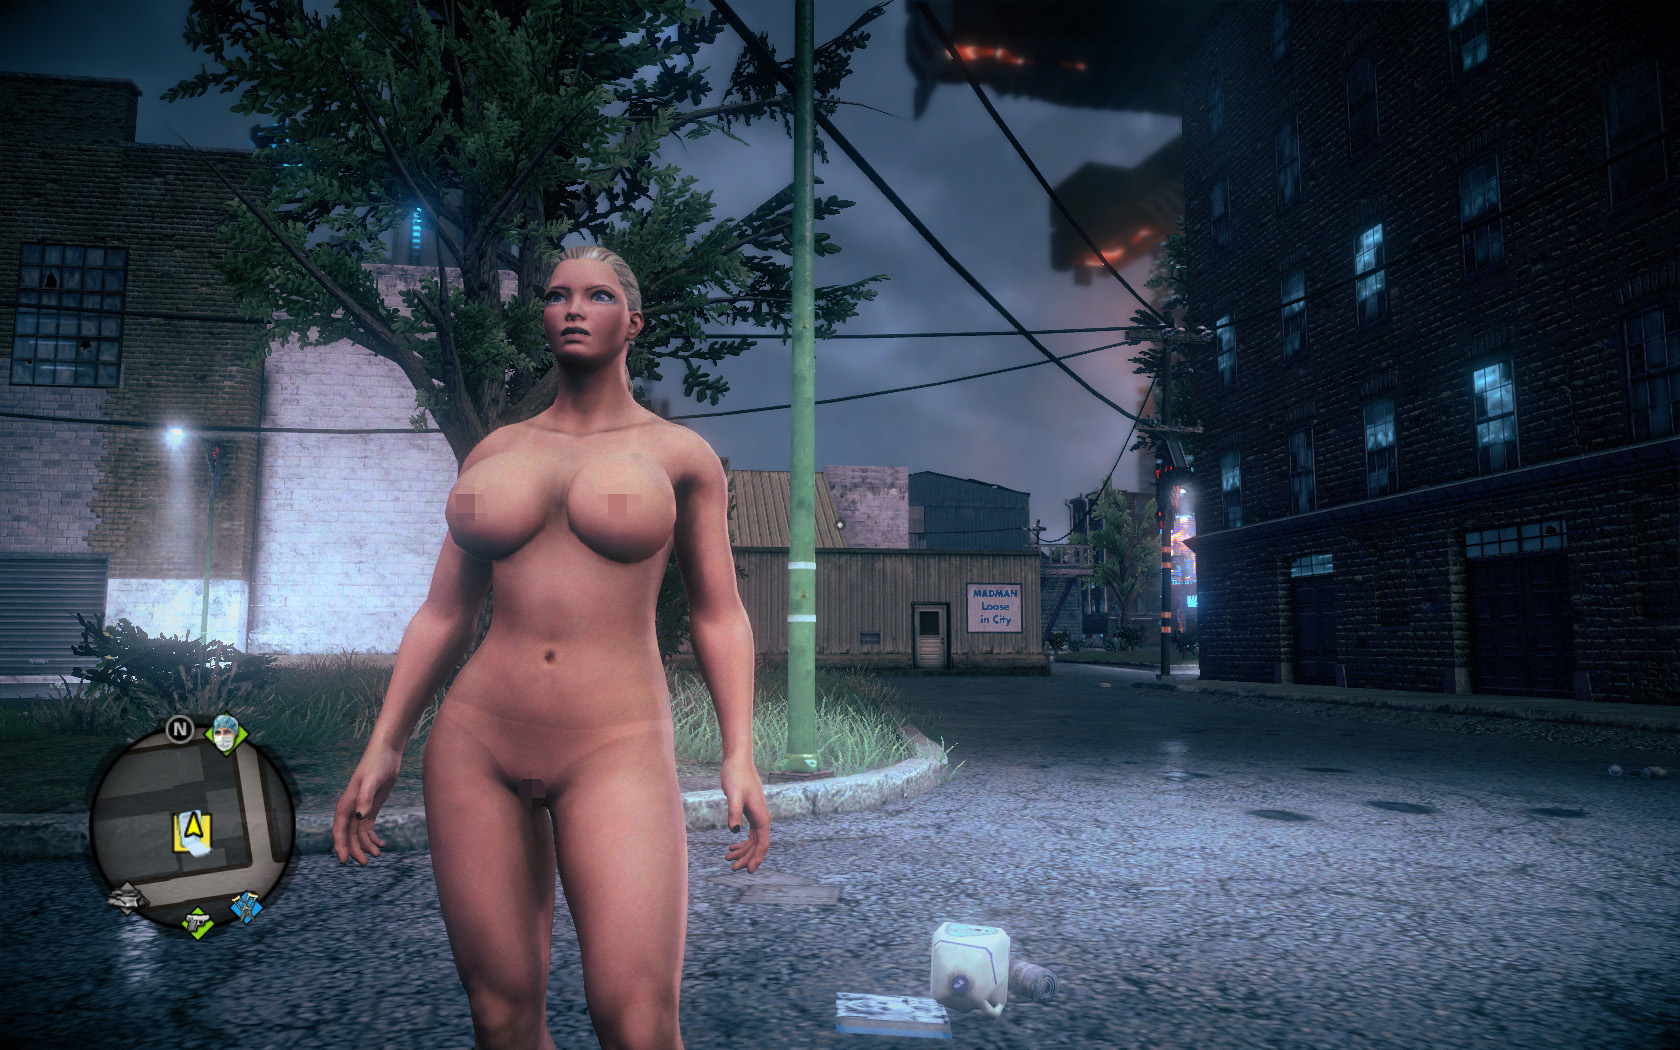 Saints row 2 uncensored patch erotic film